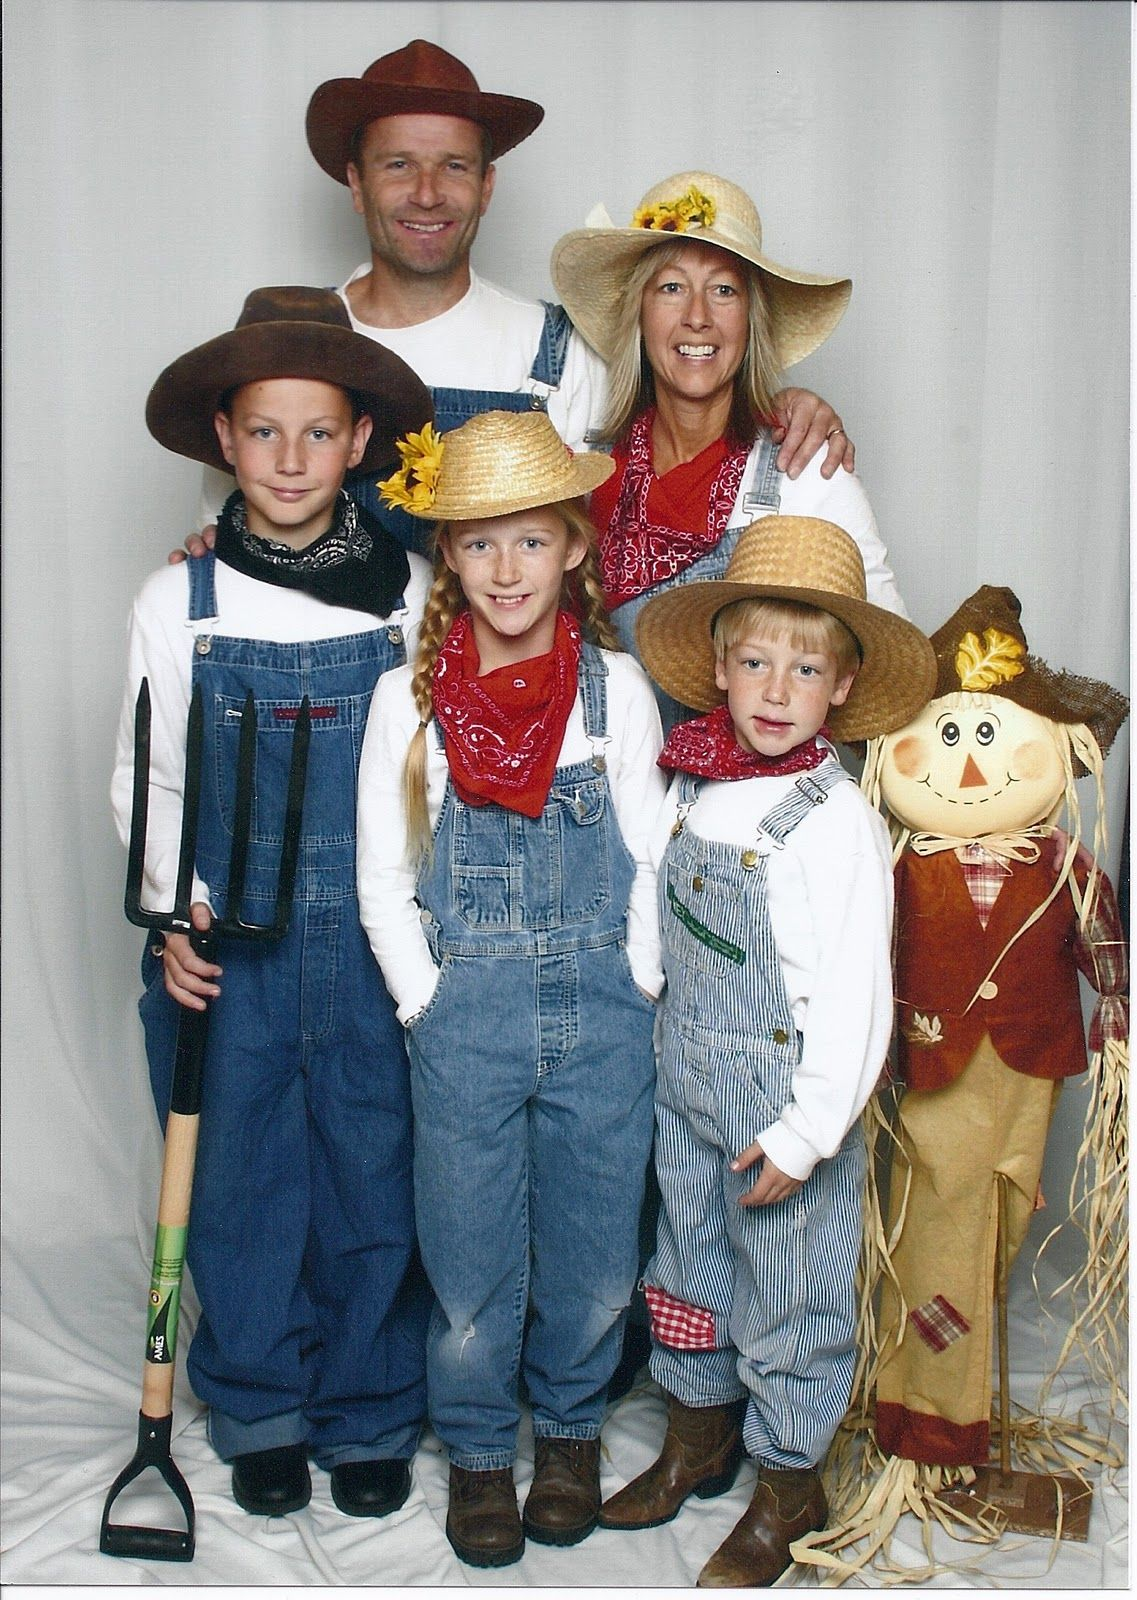 Pin By Tina Doughty On Halloween Pinterest Farmer Costume